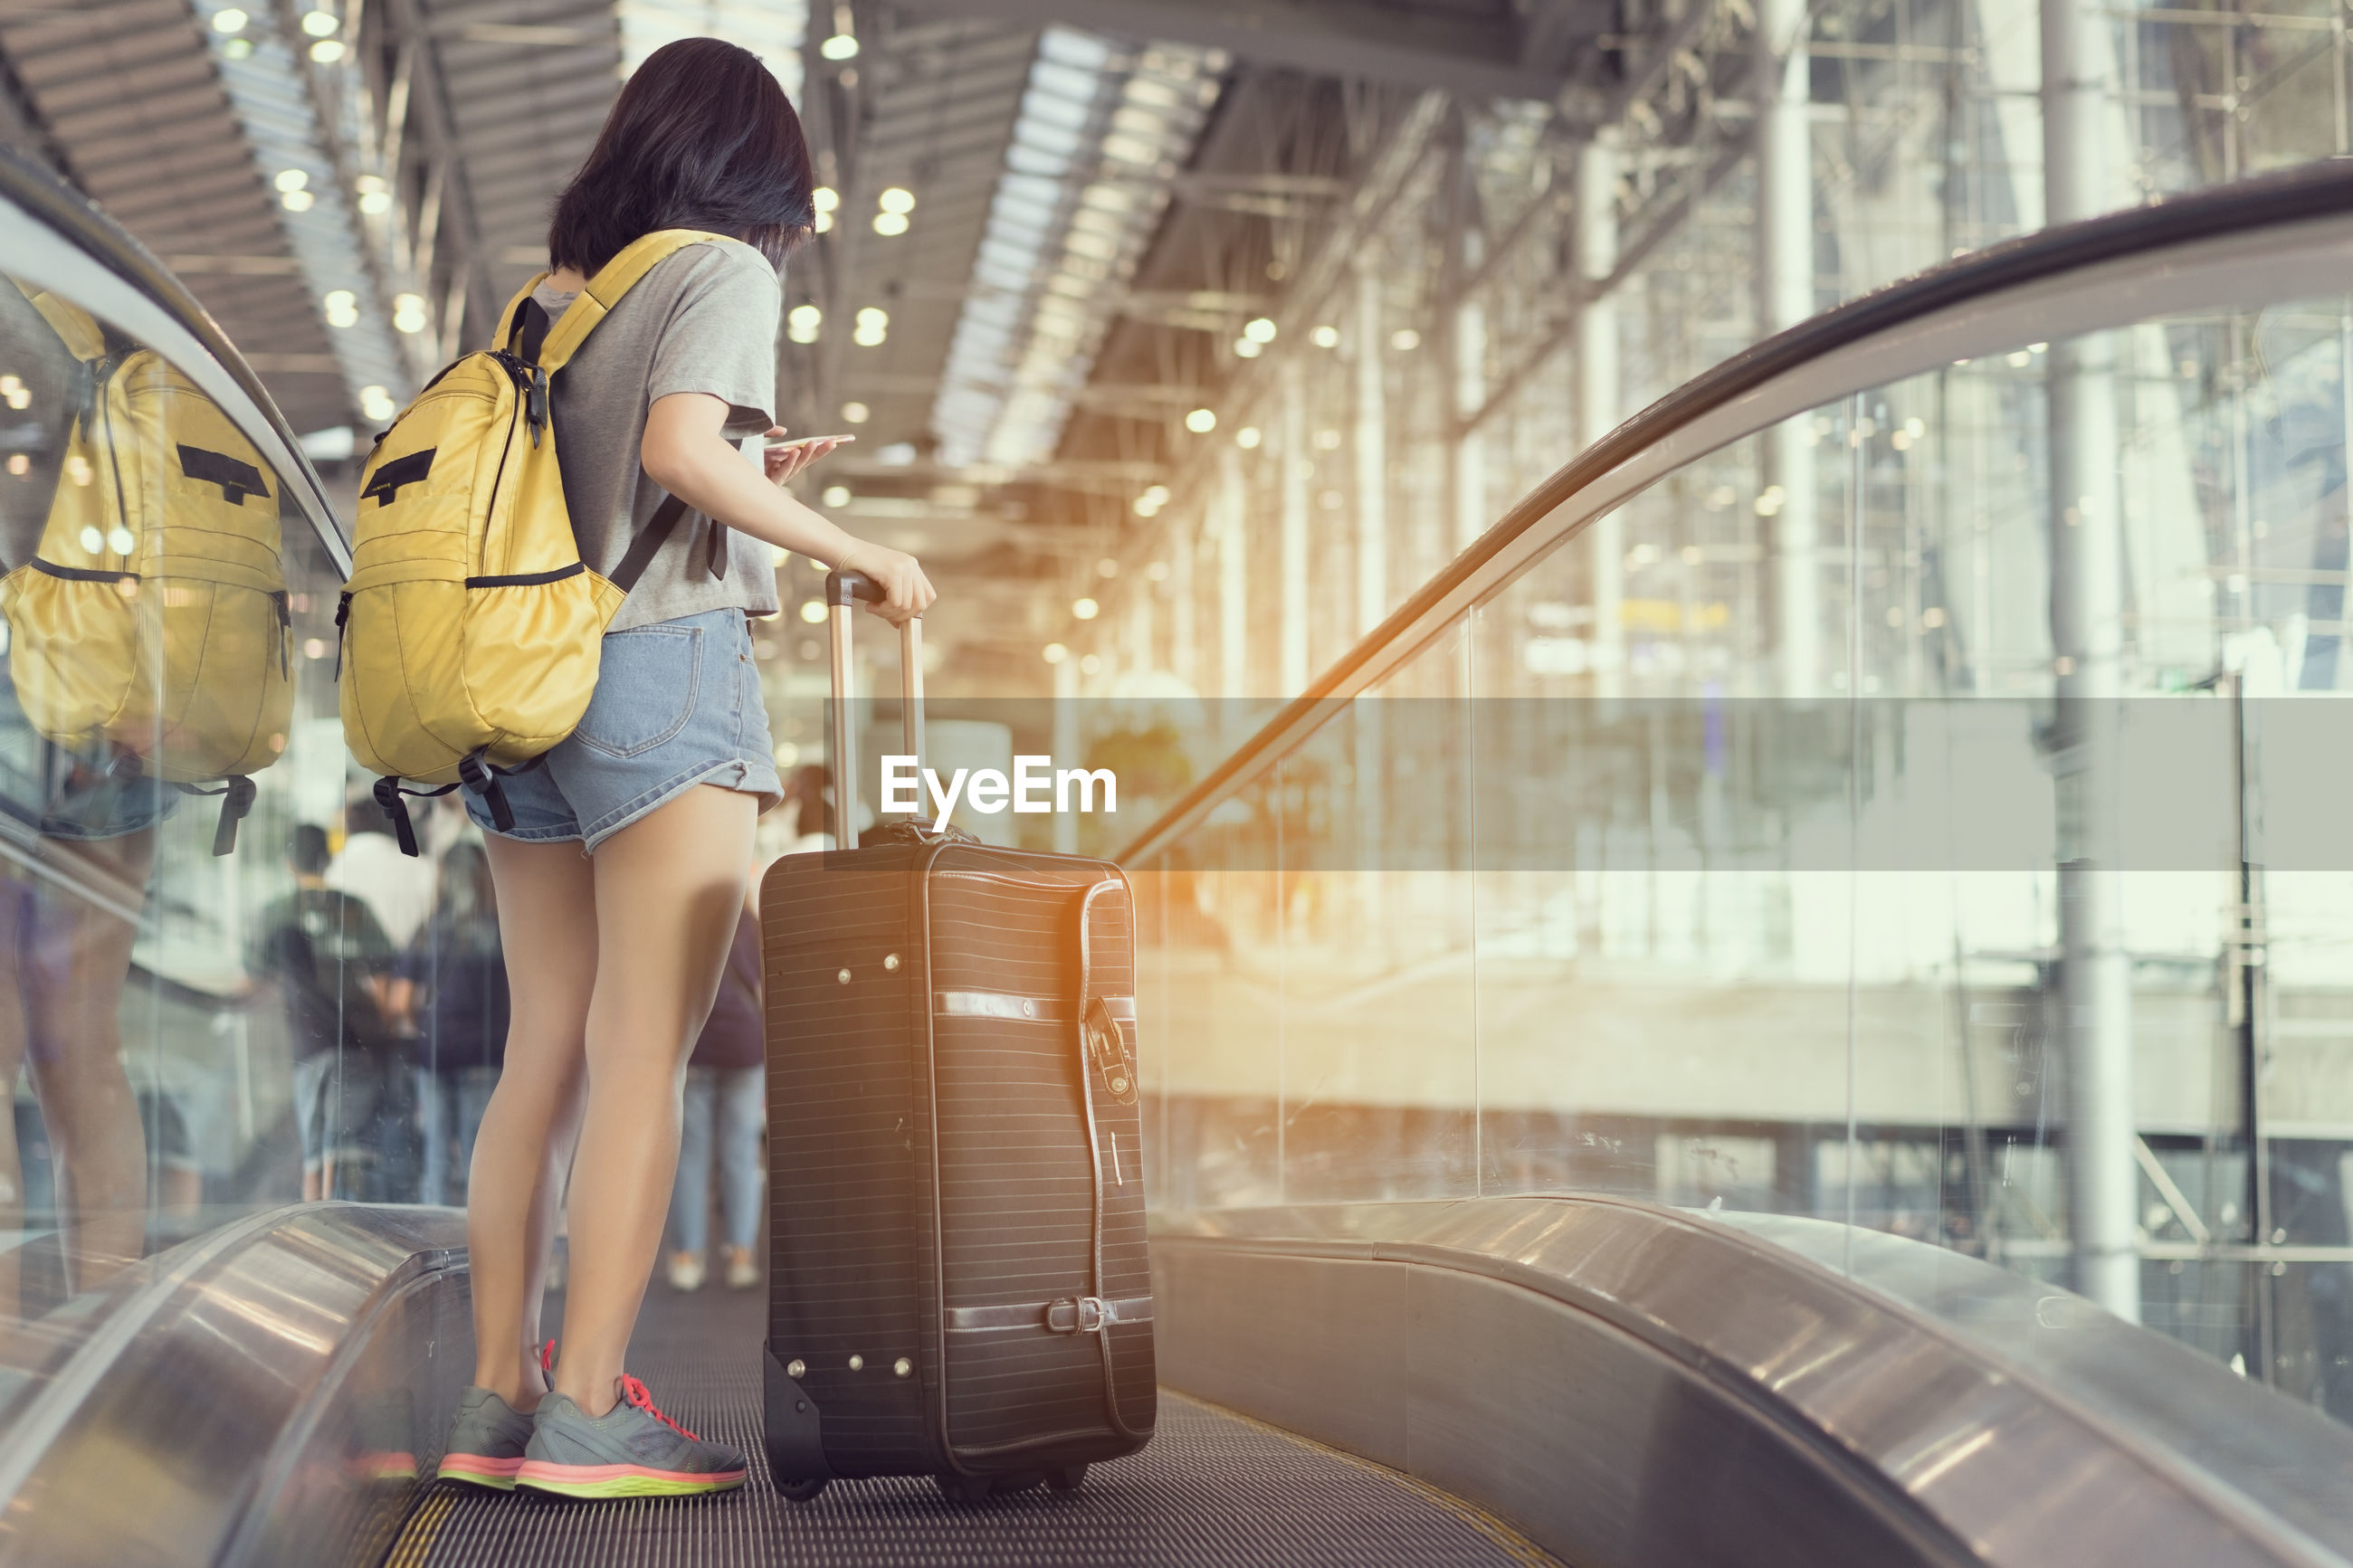 Woman carrying luggage on moving walkway in airport